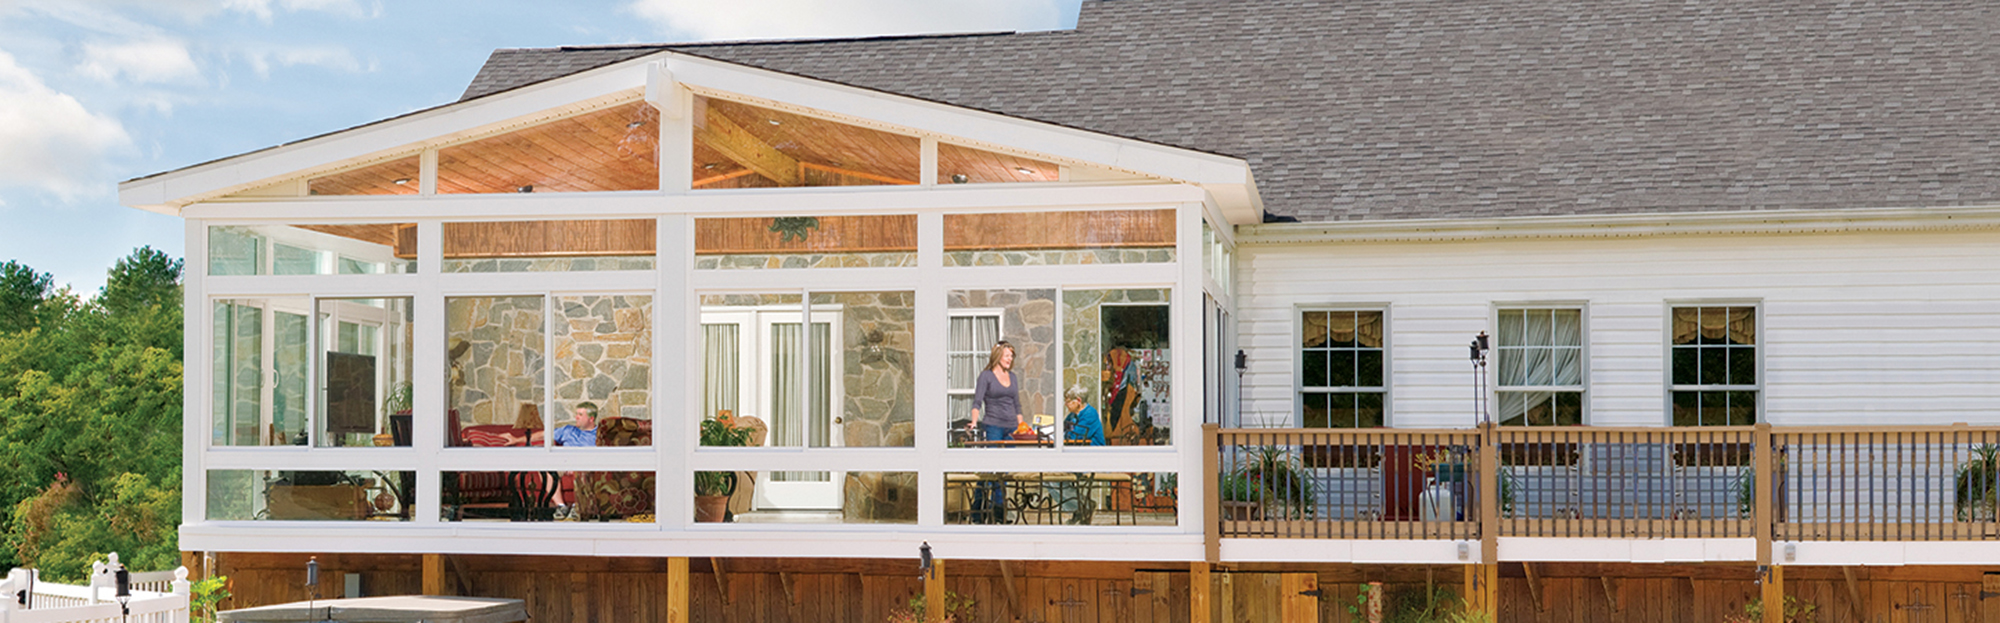 Betterliving Patio & Sunrooms or Pittsburgh